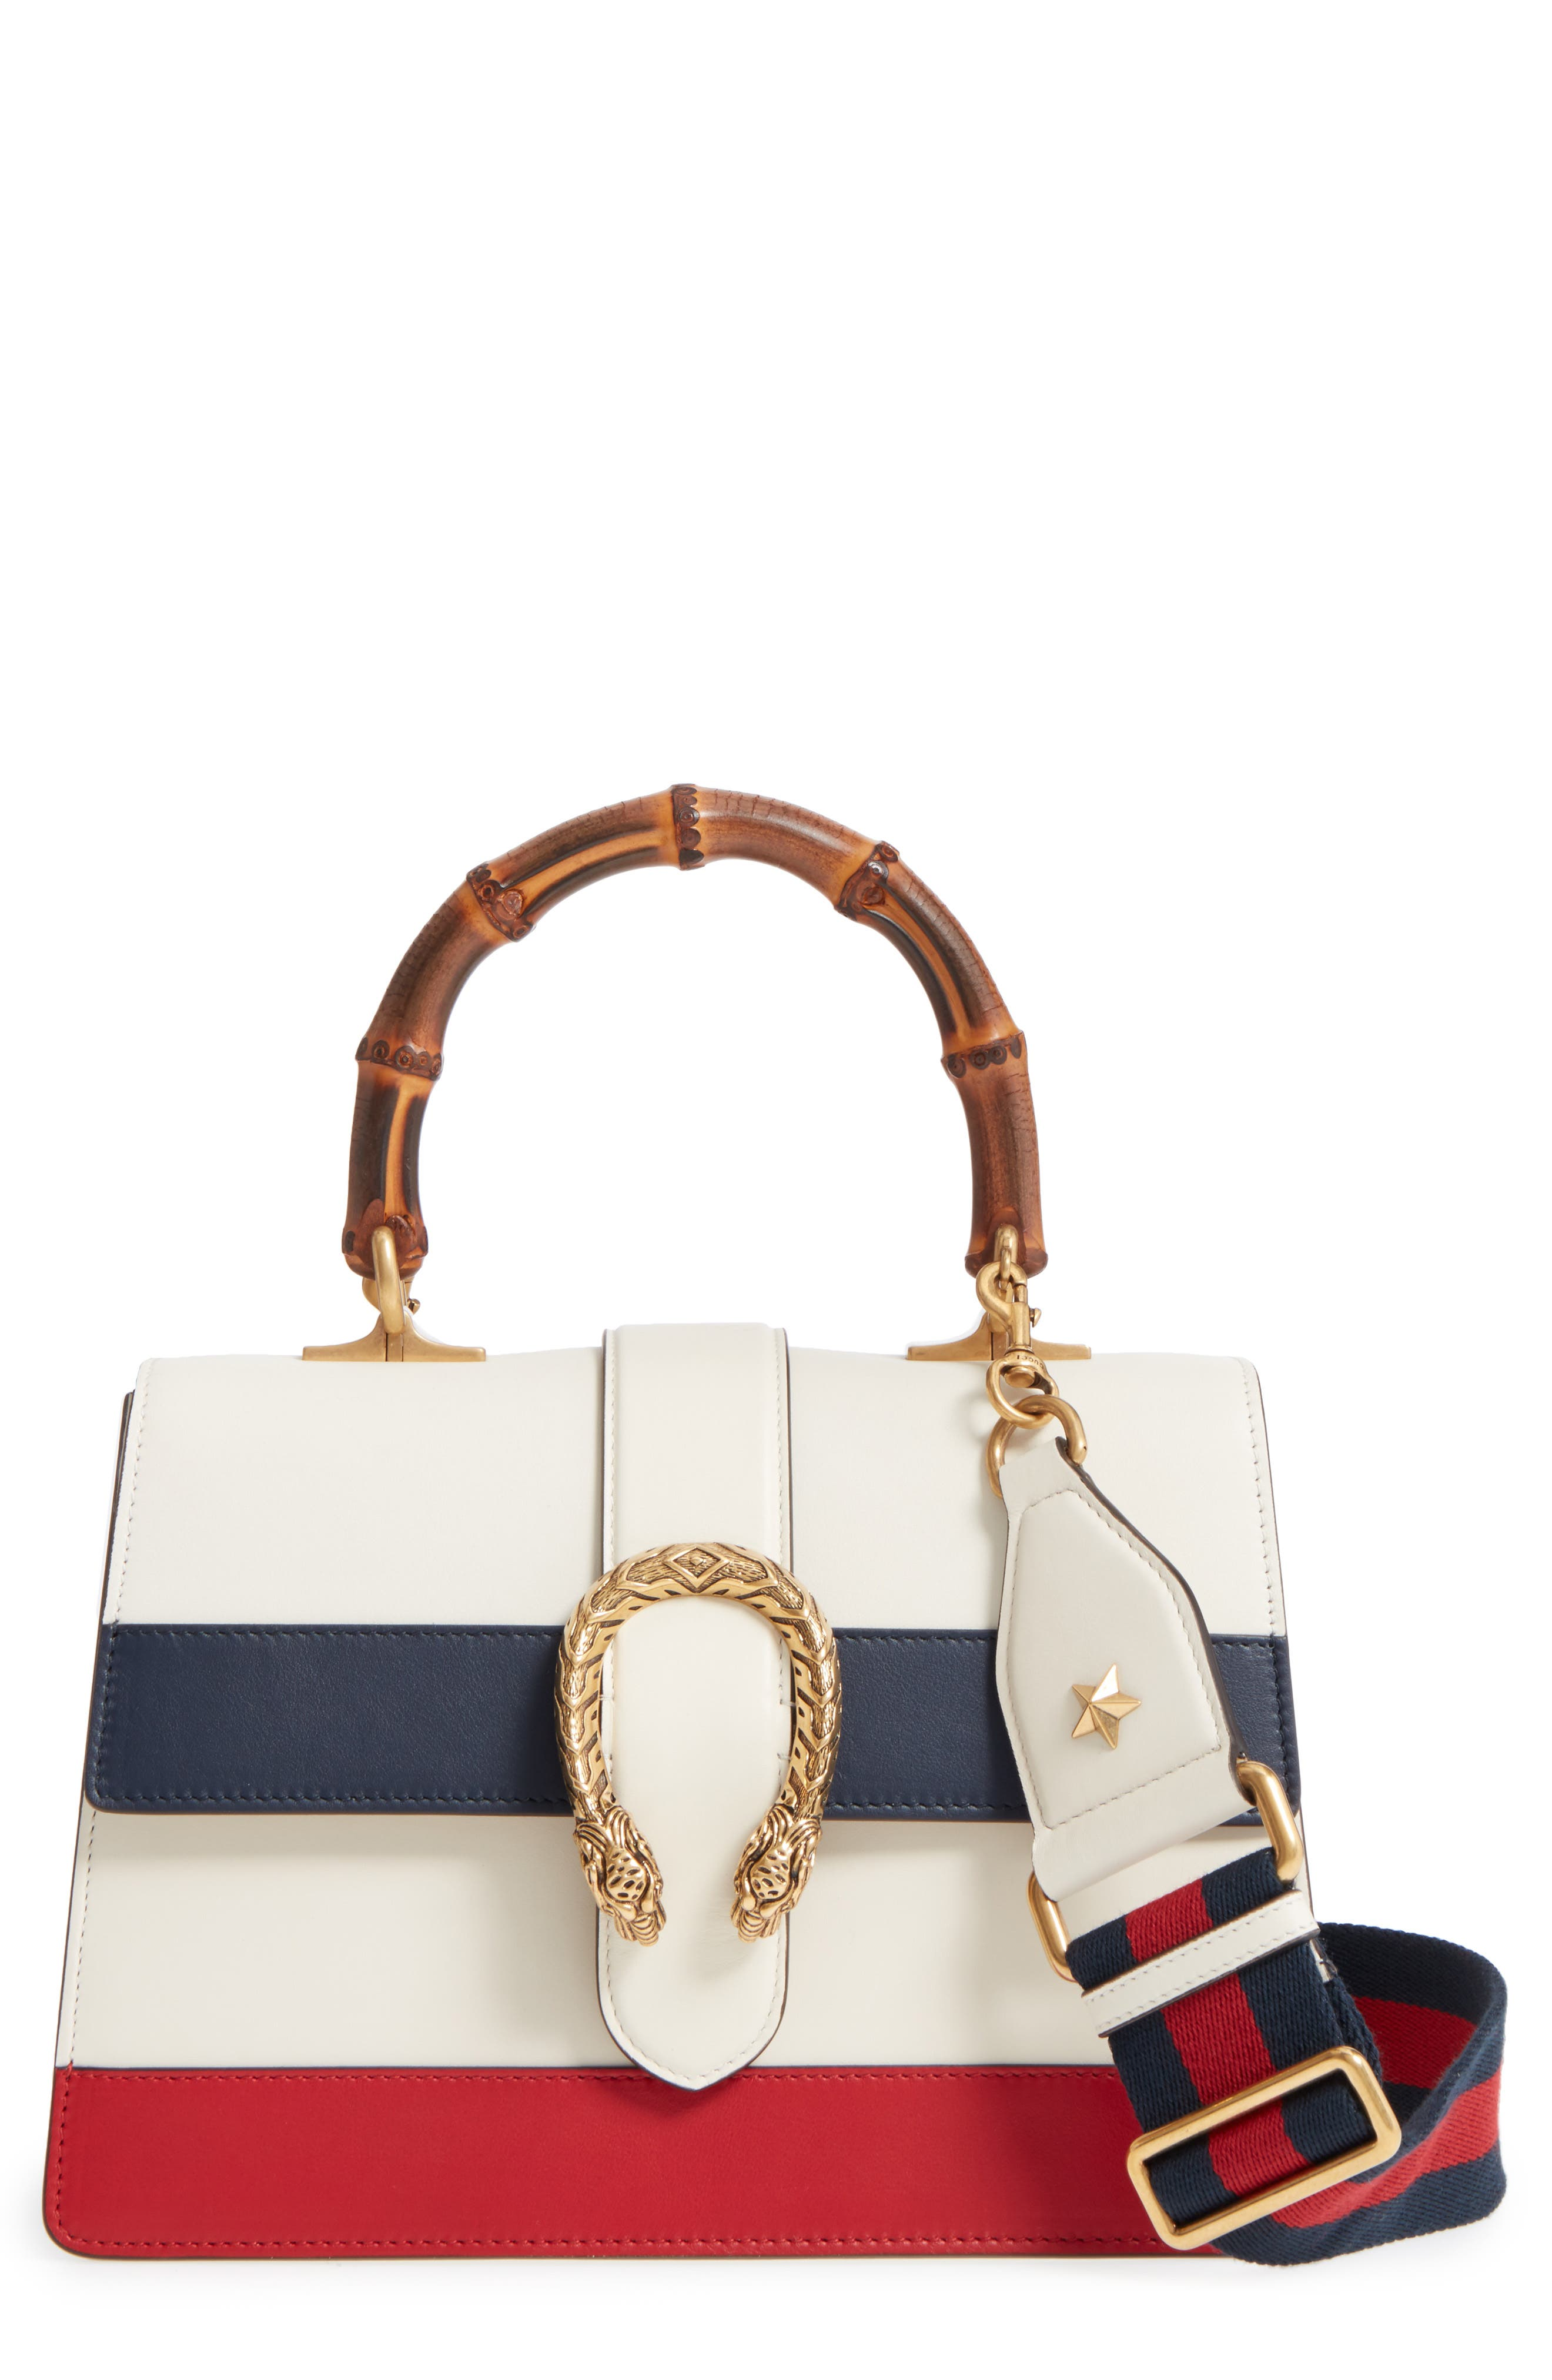 Small Dionysus Top Handle Leather Shoulder Bag,                         Main,                         color, MYSTIC WHITE/ BLUE/ RED